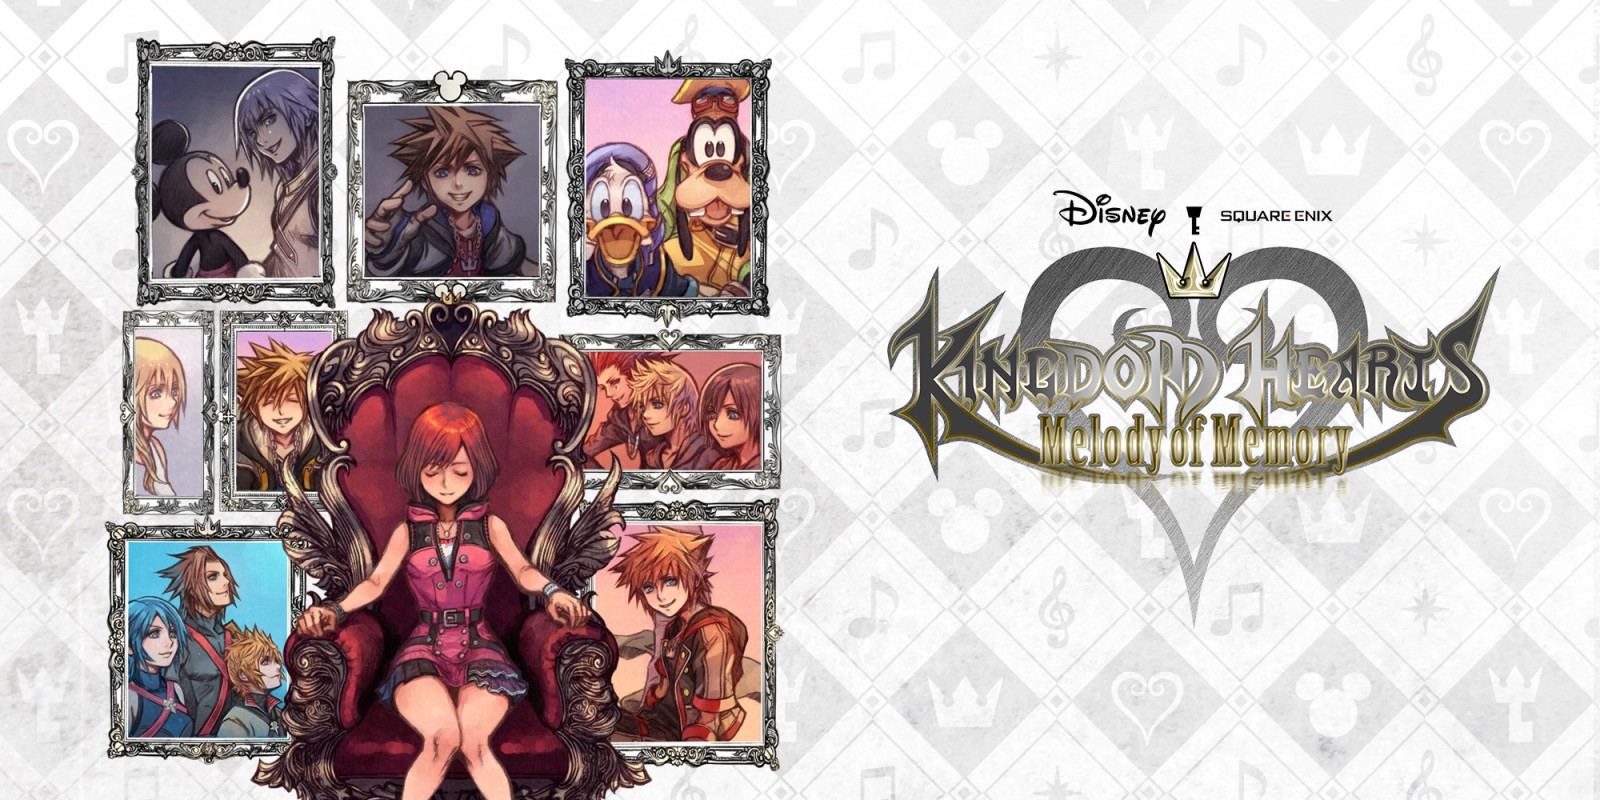 Kingdom Hearts 20 aniversario destacada